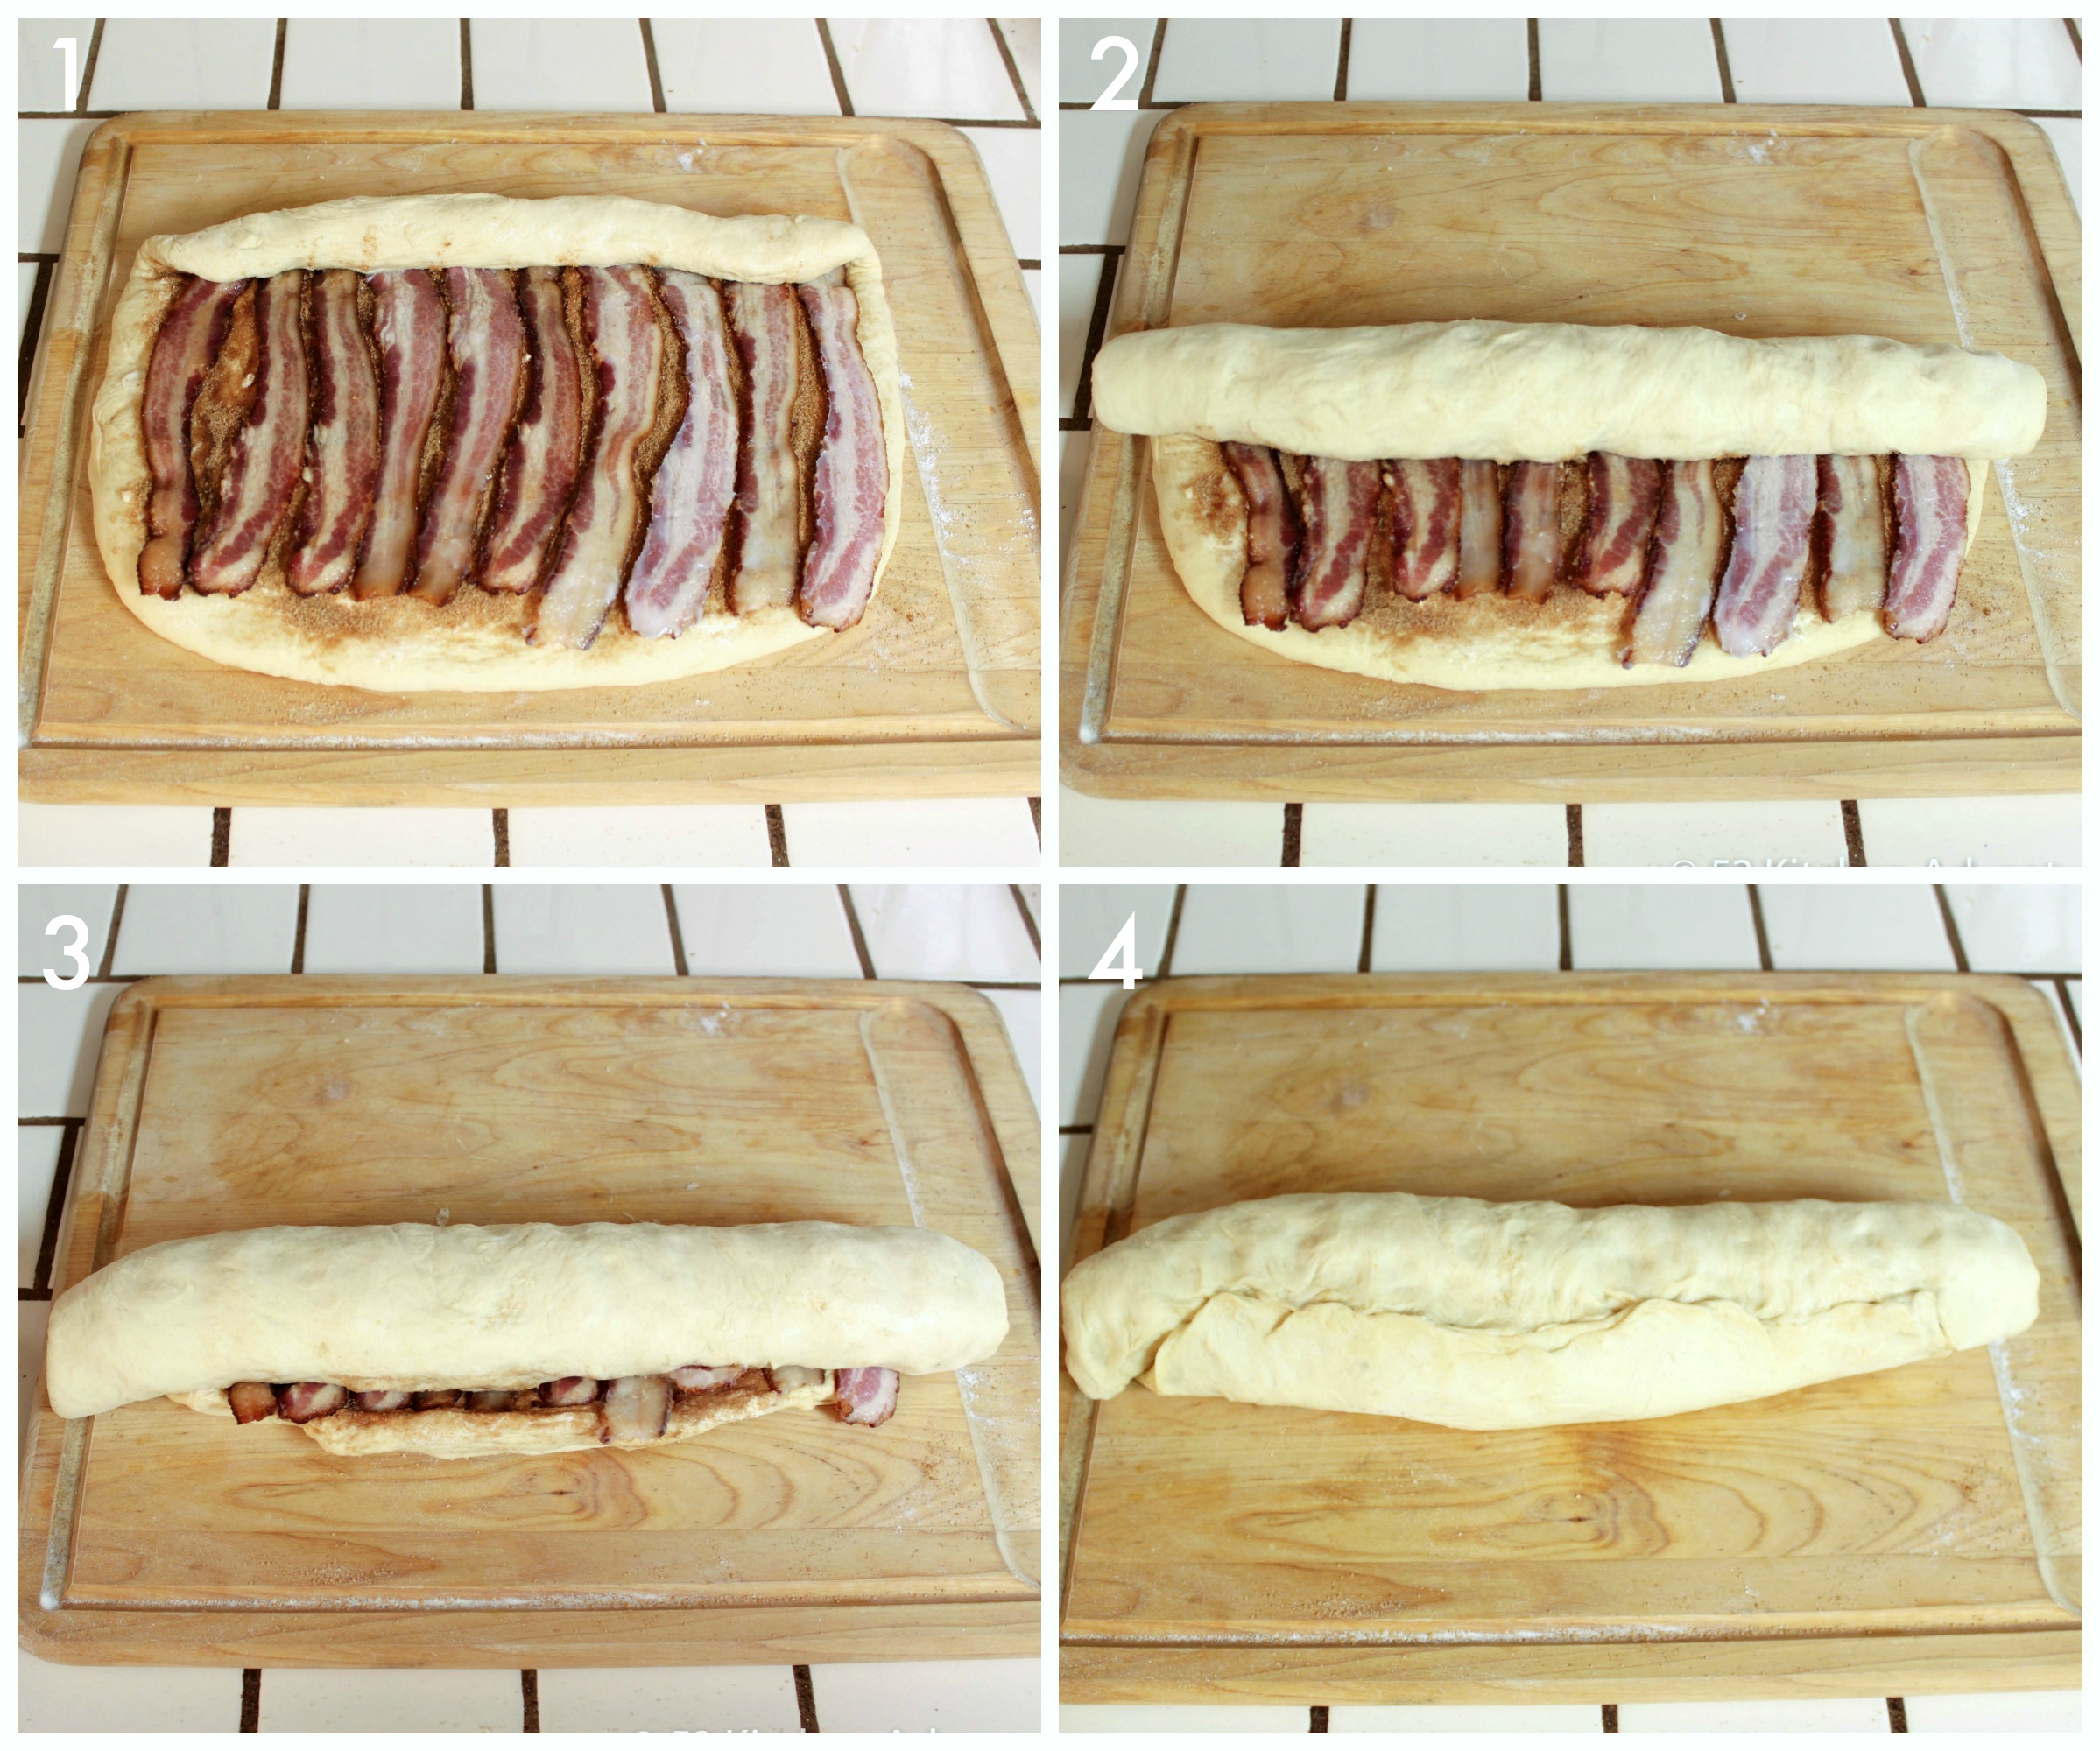 How to make Maple Bacon Cinnamon Rolls